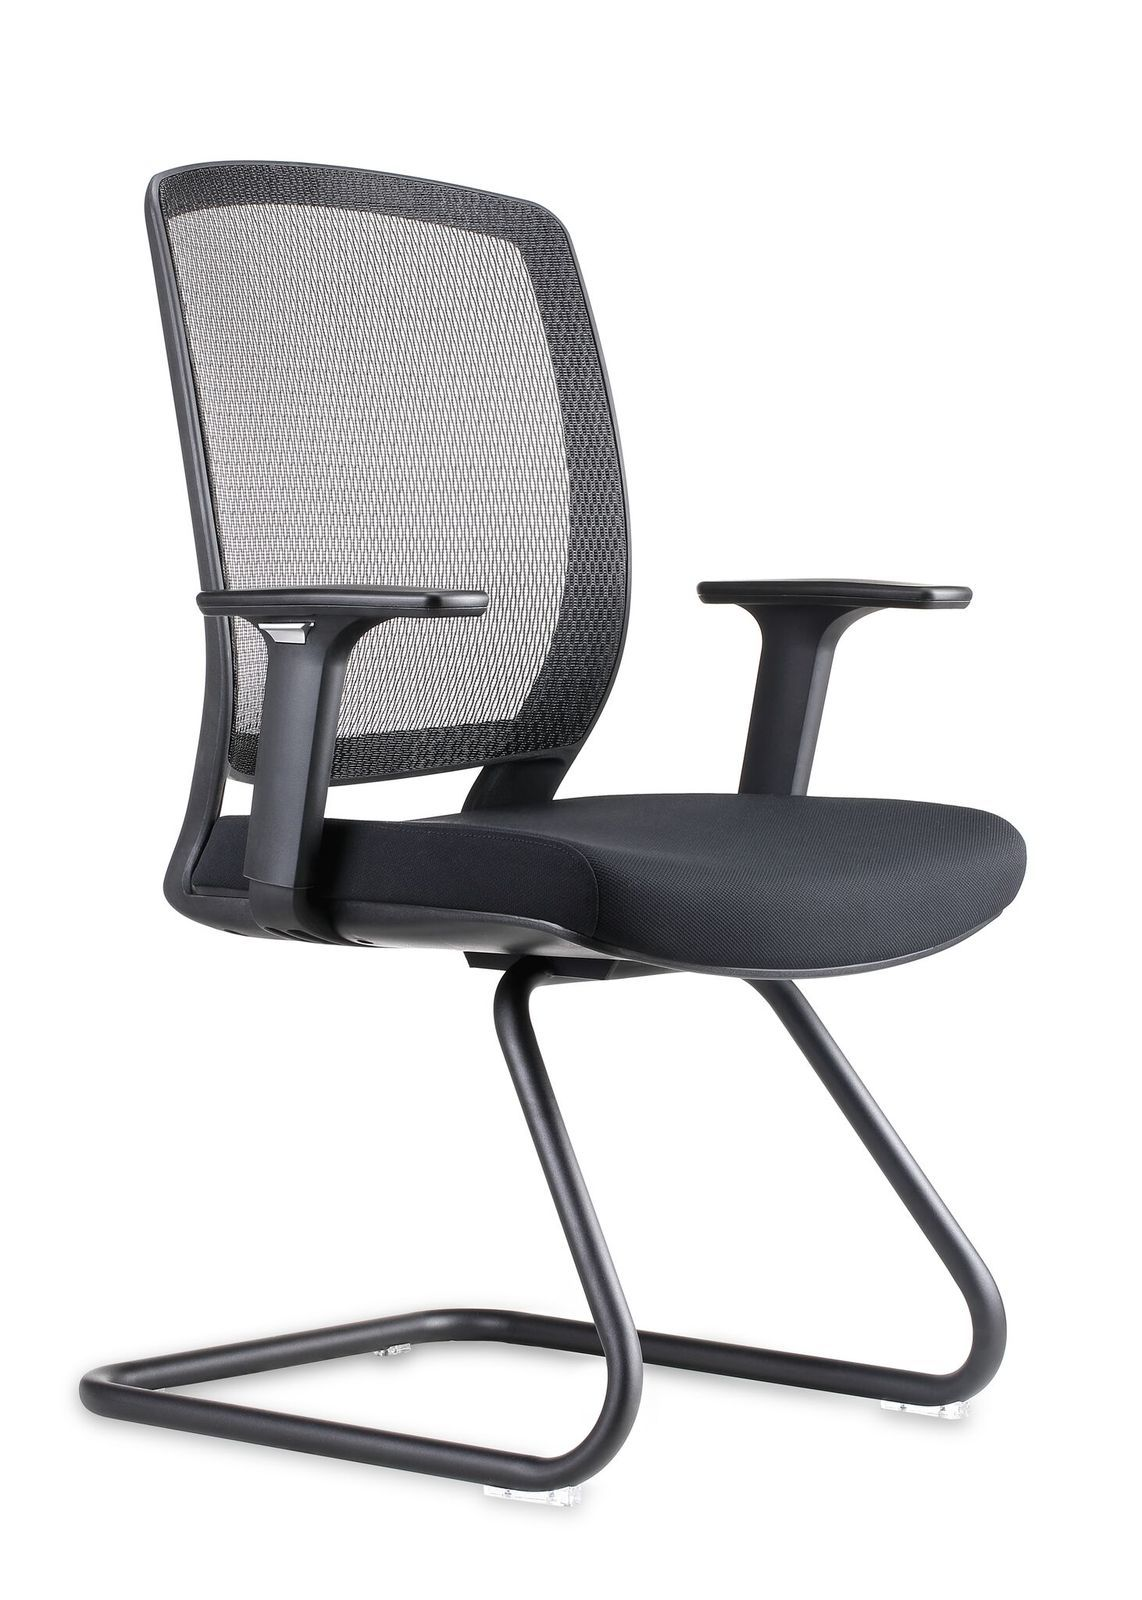 office chairs cork designer chair covers australia pty ltd hartley black promesh mesh back visitor stock